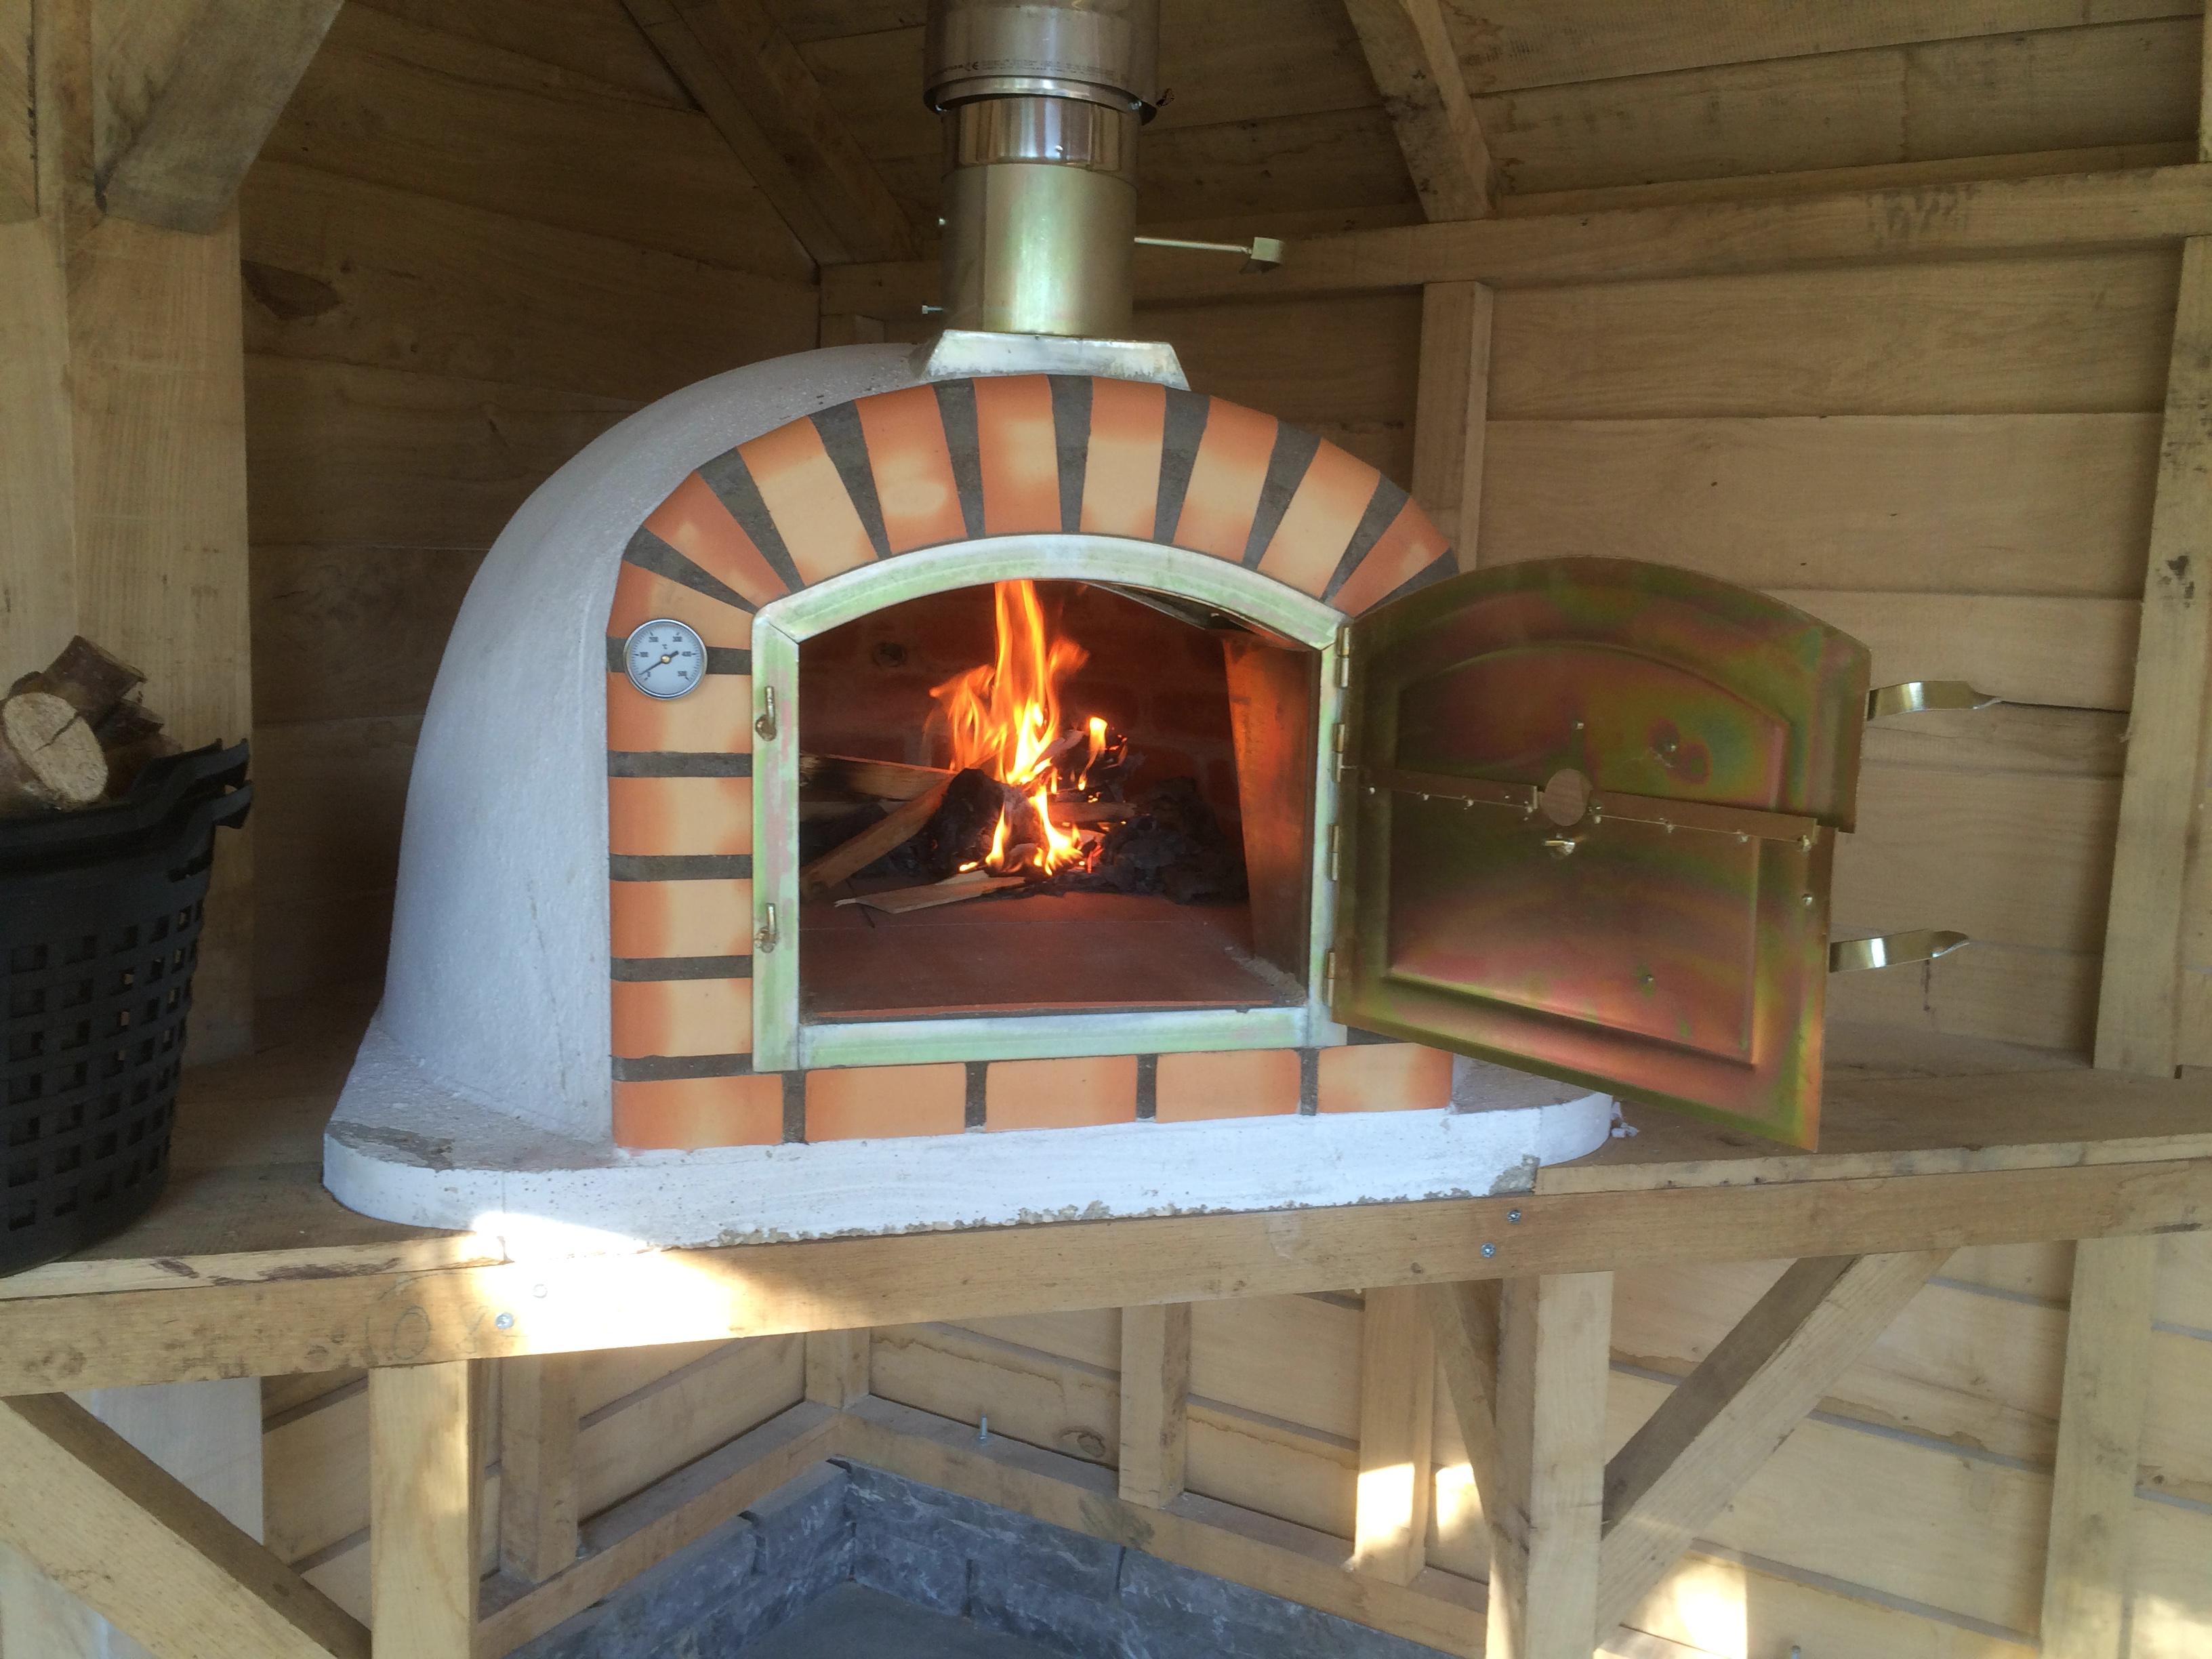 Pizza Oven Tuin : Pizzaovens streefkerk bouw